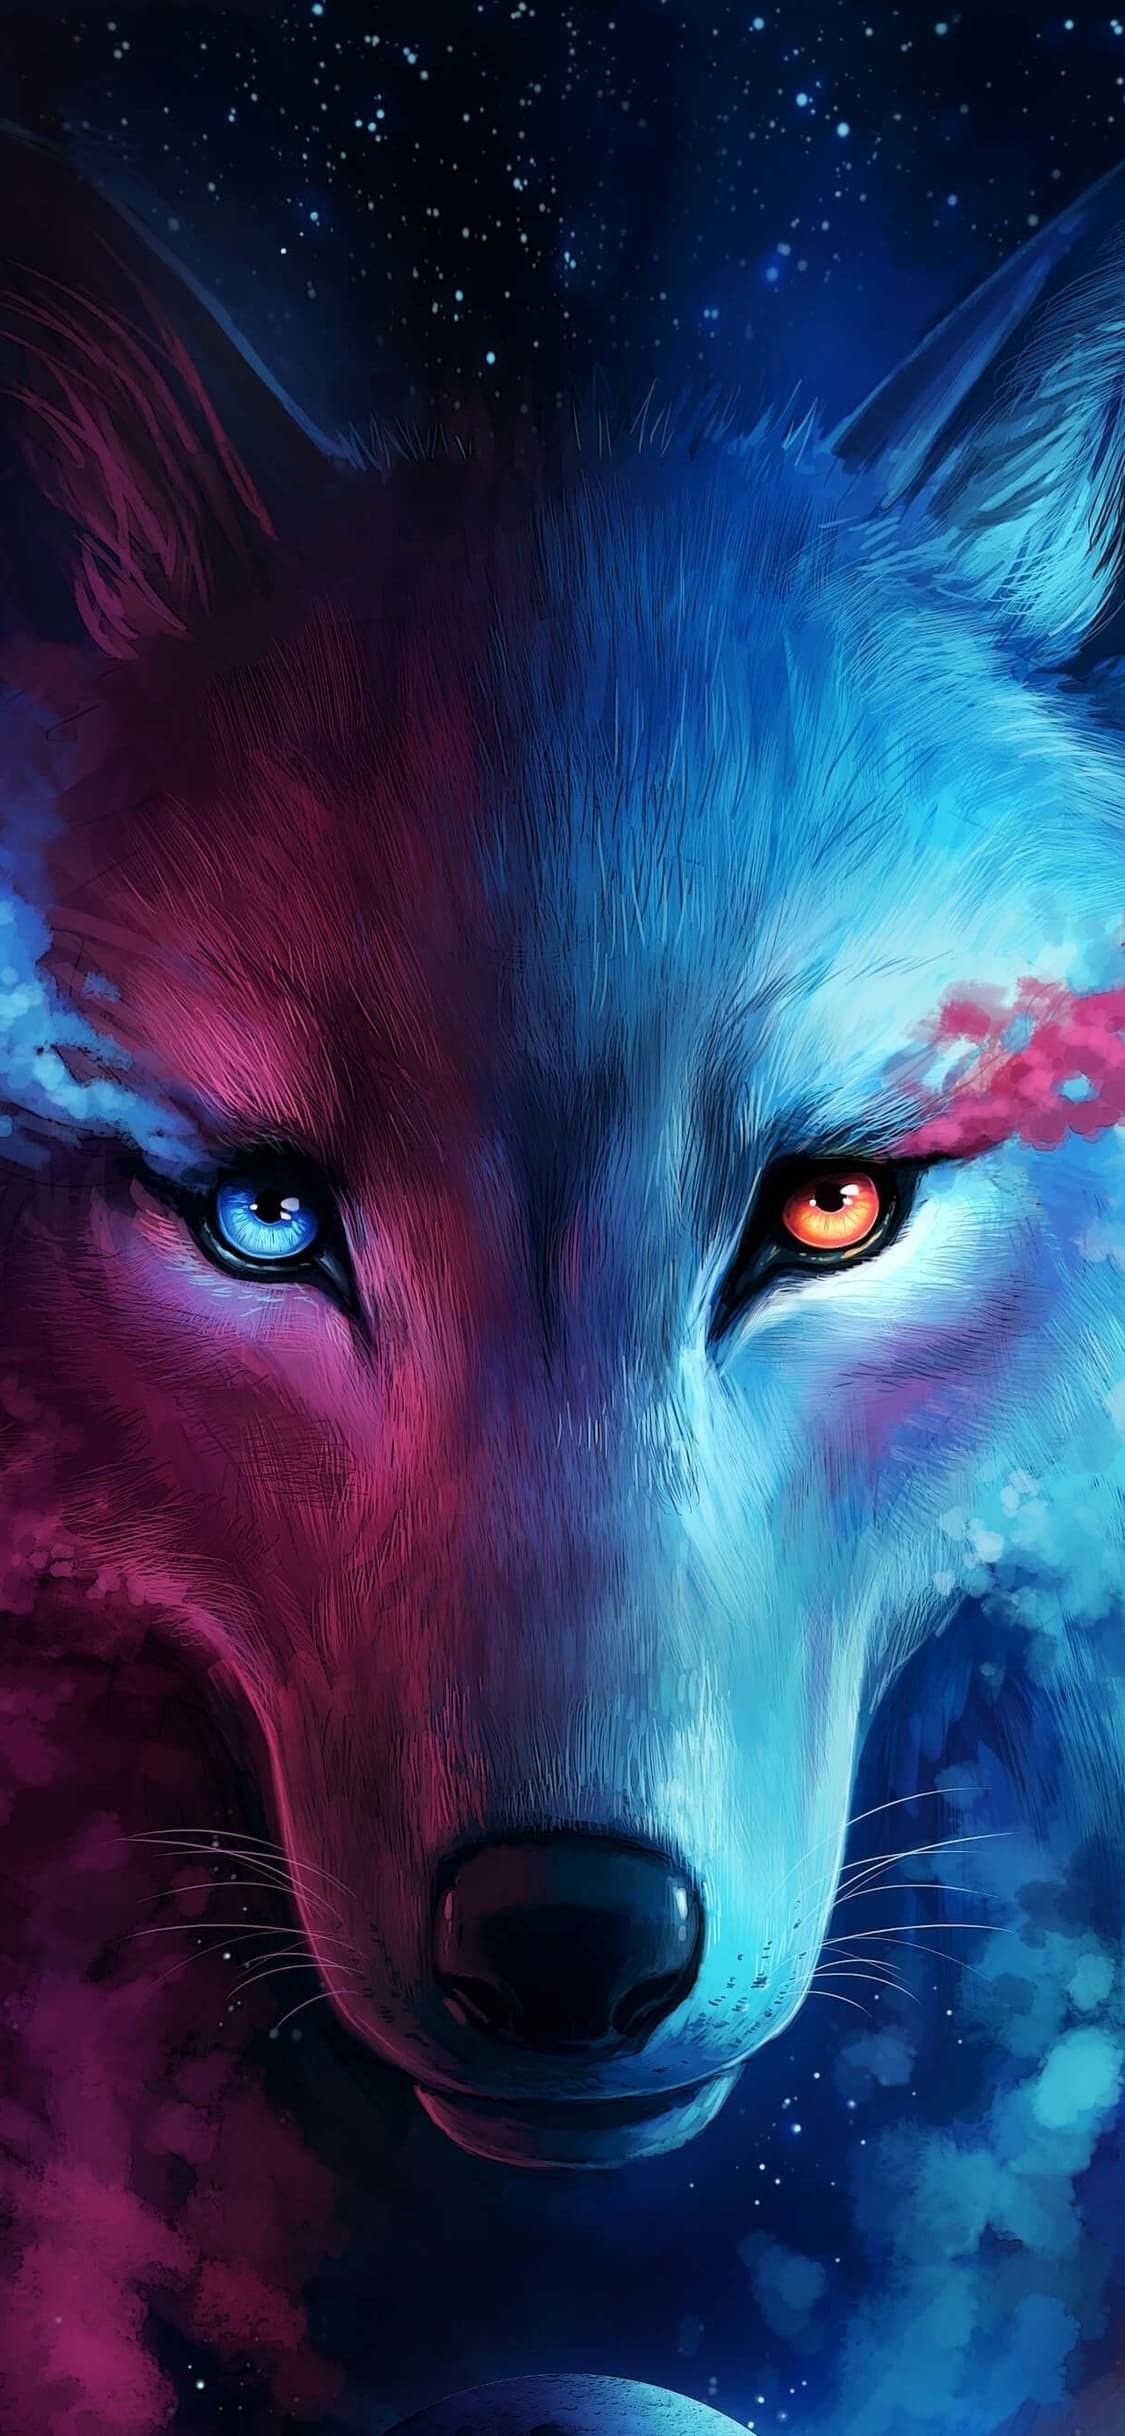 Wolf Wallpaper Android Apps on Google Play 1999×1333 Lone